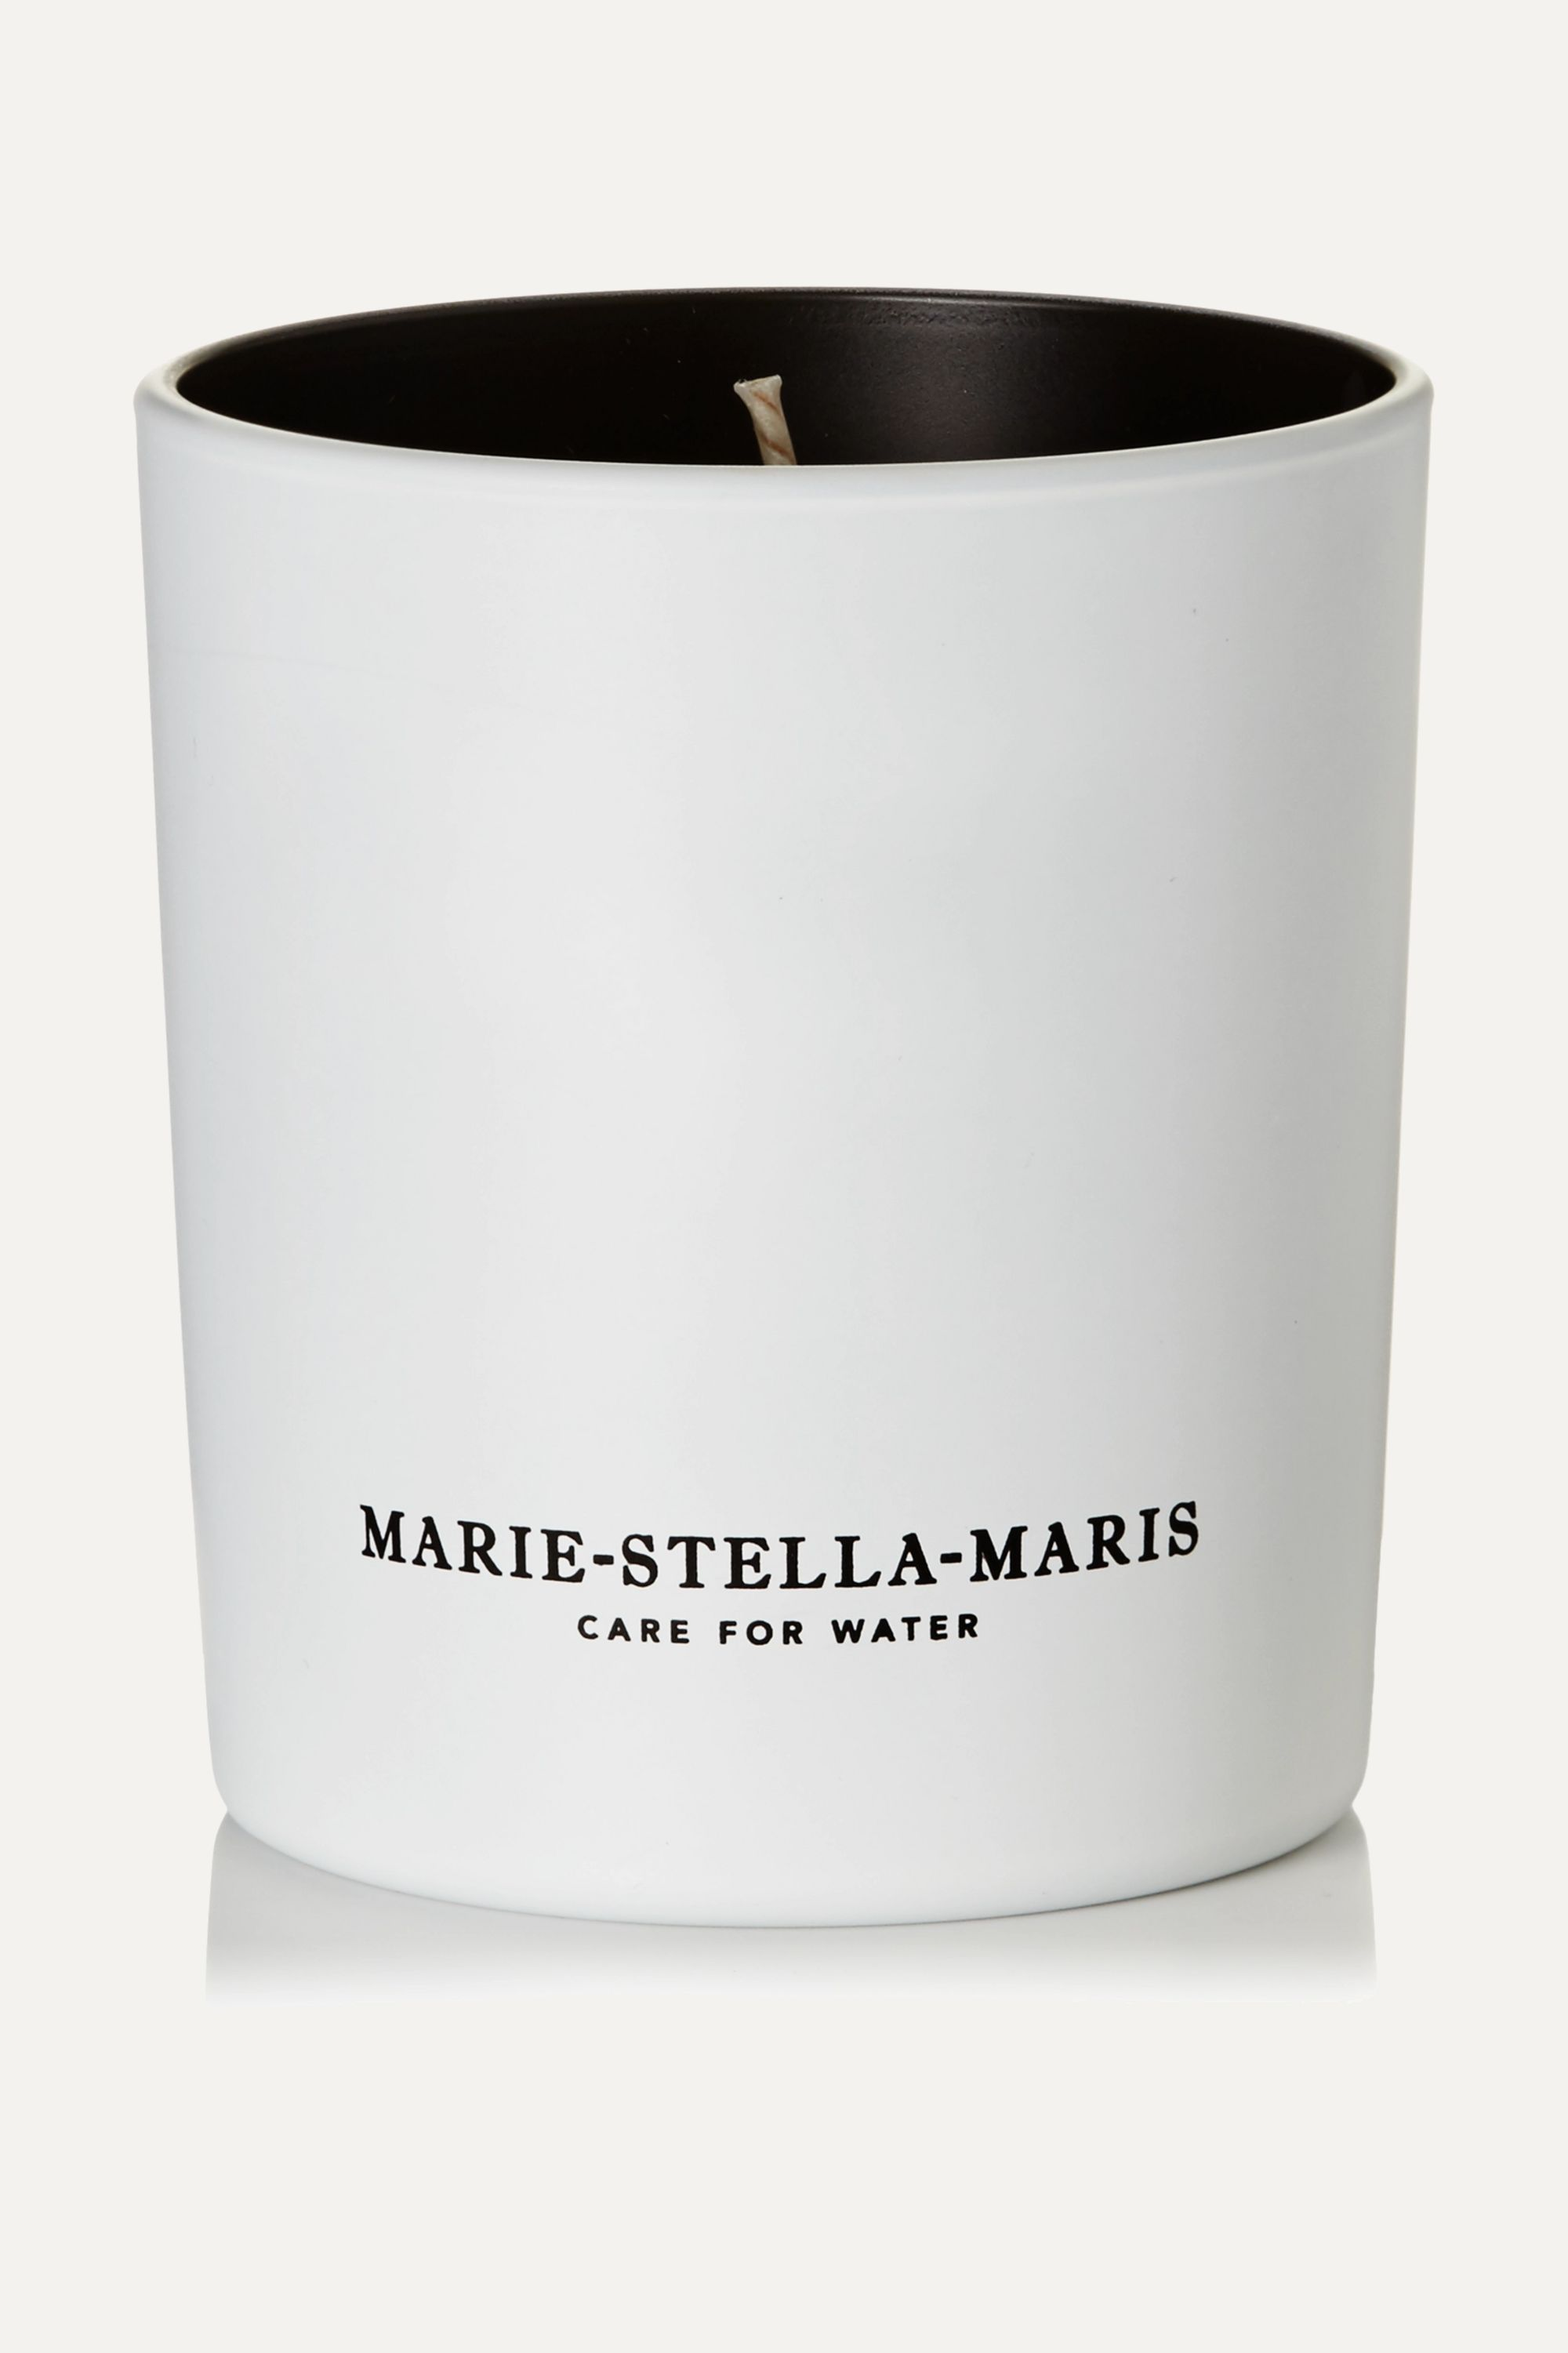 Marie-Stella-Maris No.92 Objets d' Amsterdam Scented Candle, 180g